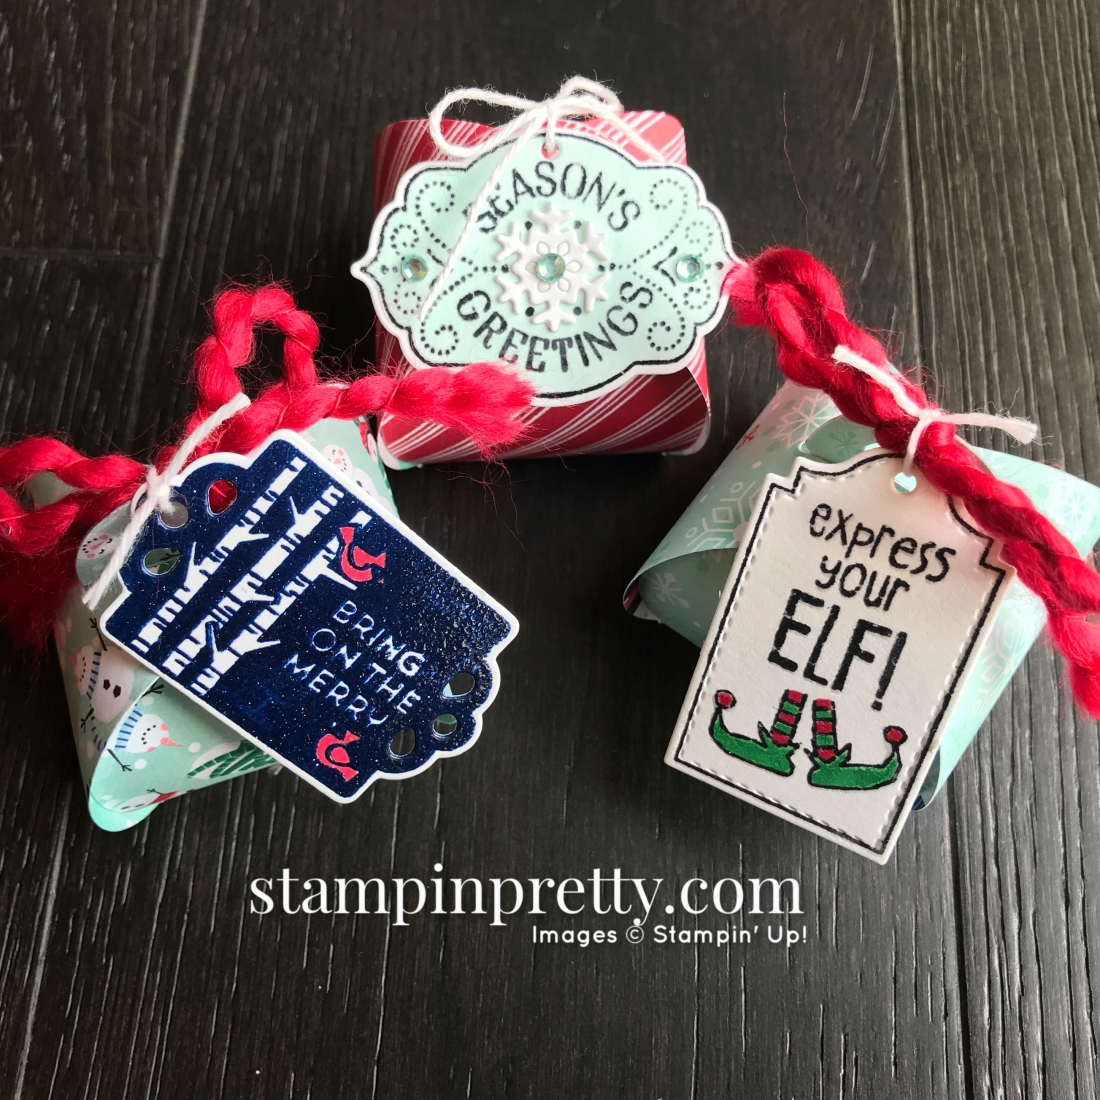 Tags Tags Tags & Mini Curvy Keepsake Box from Stampin' Up! Trio by Mary Fish, Stampin' Pretty